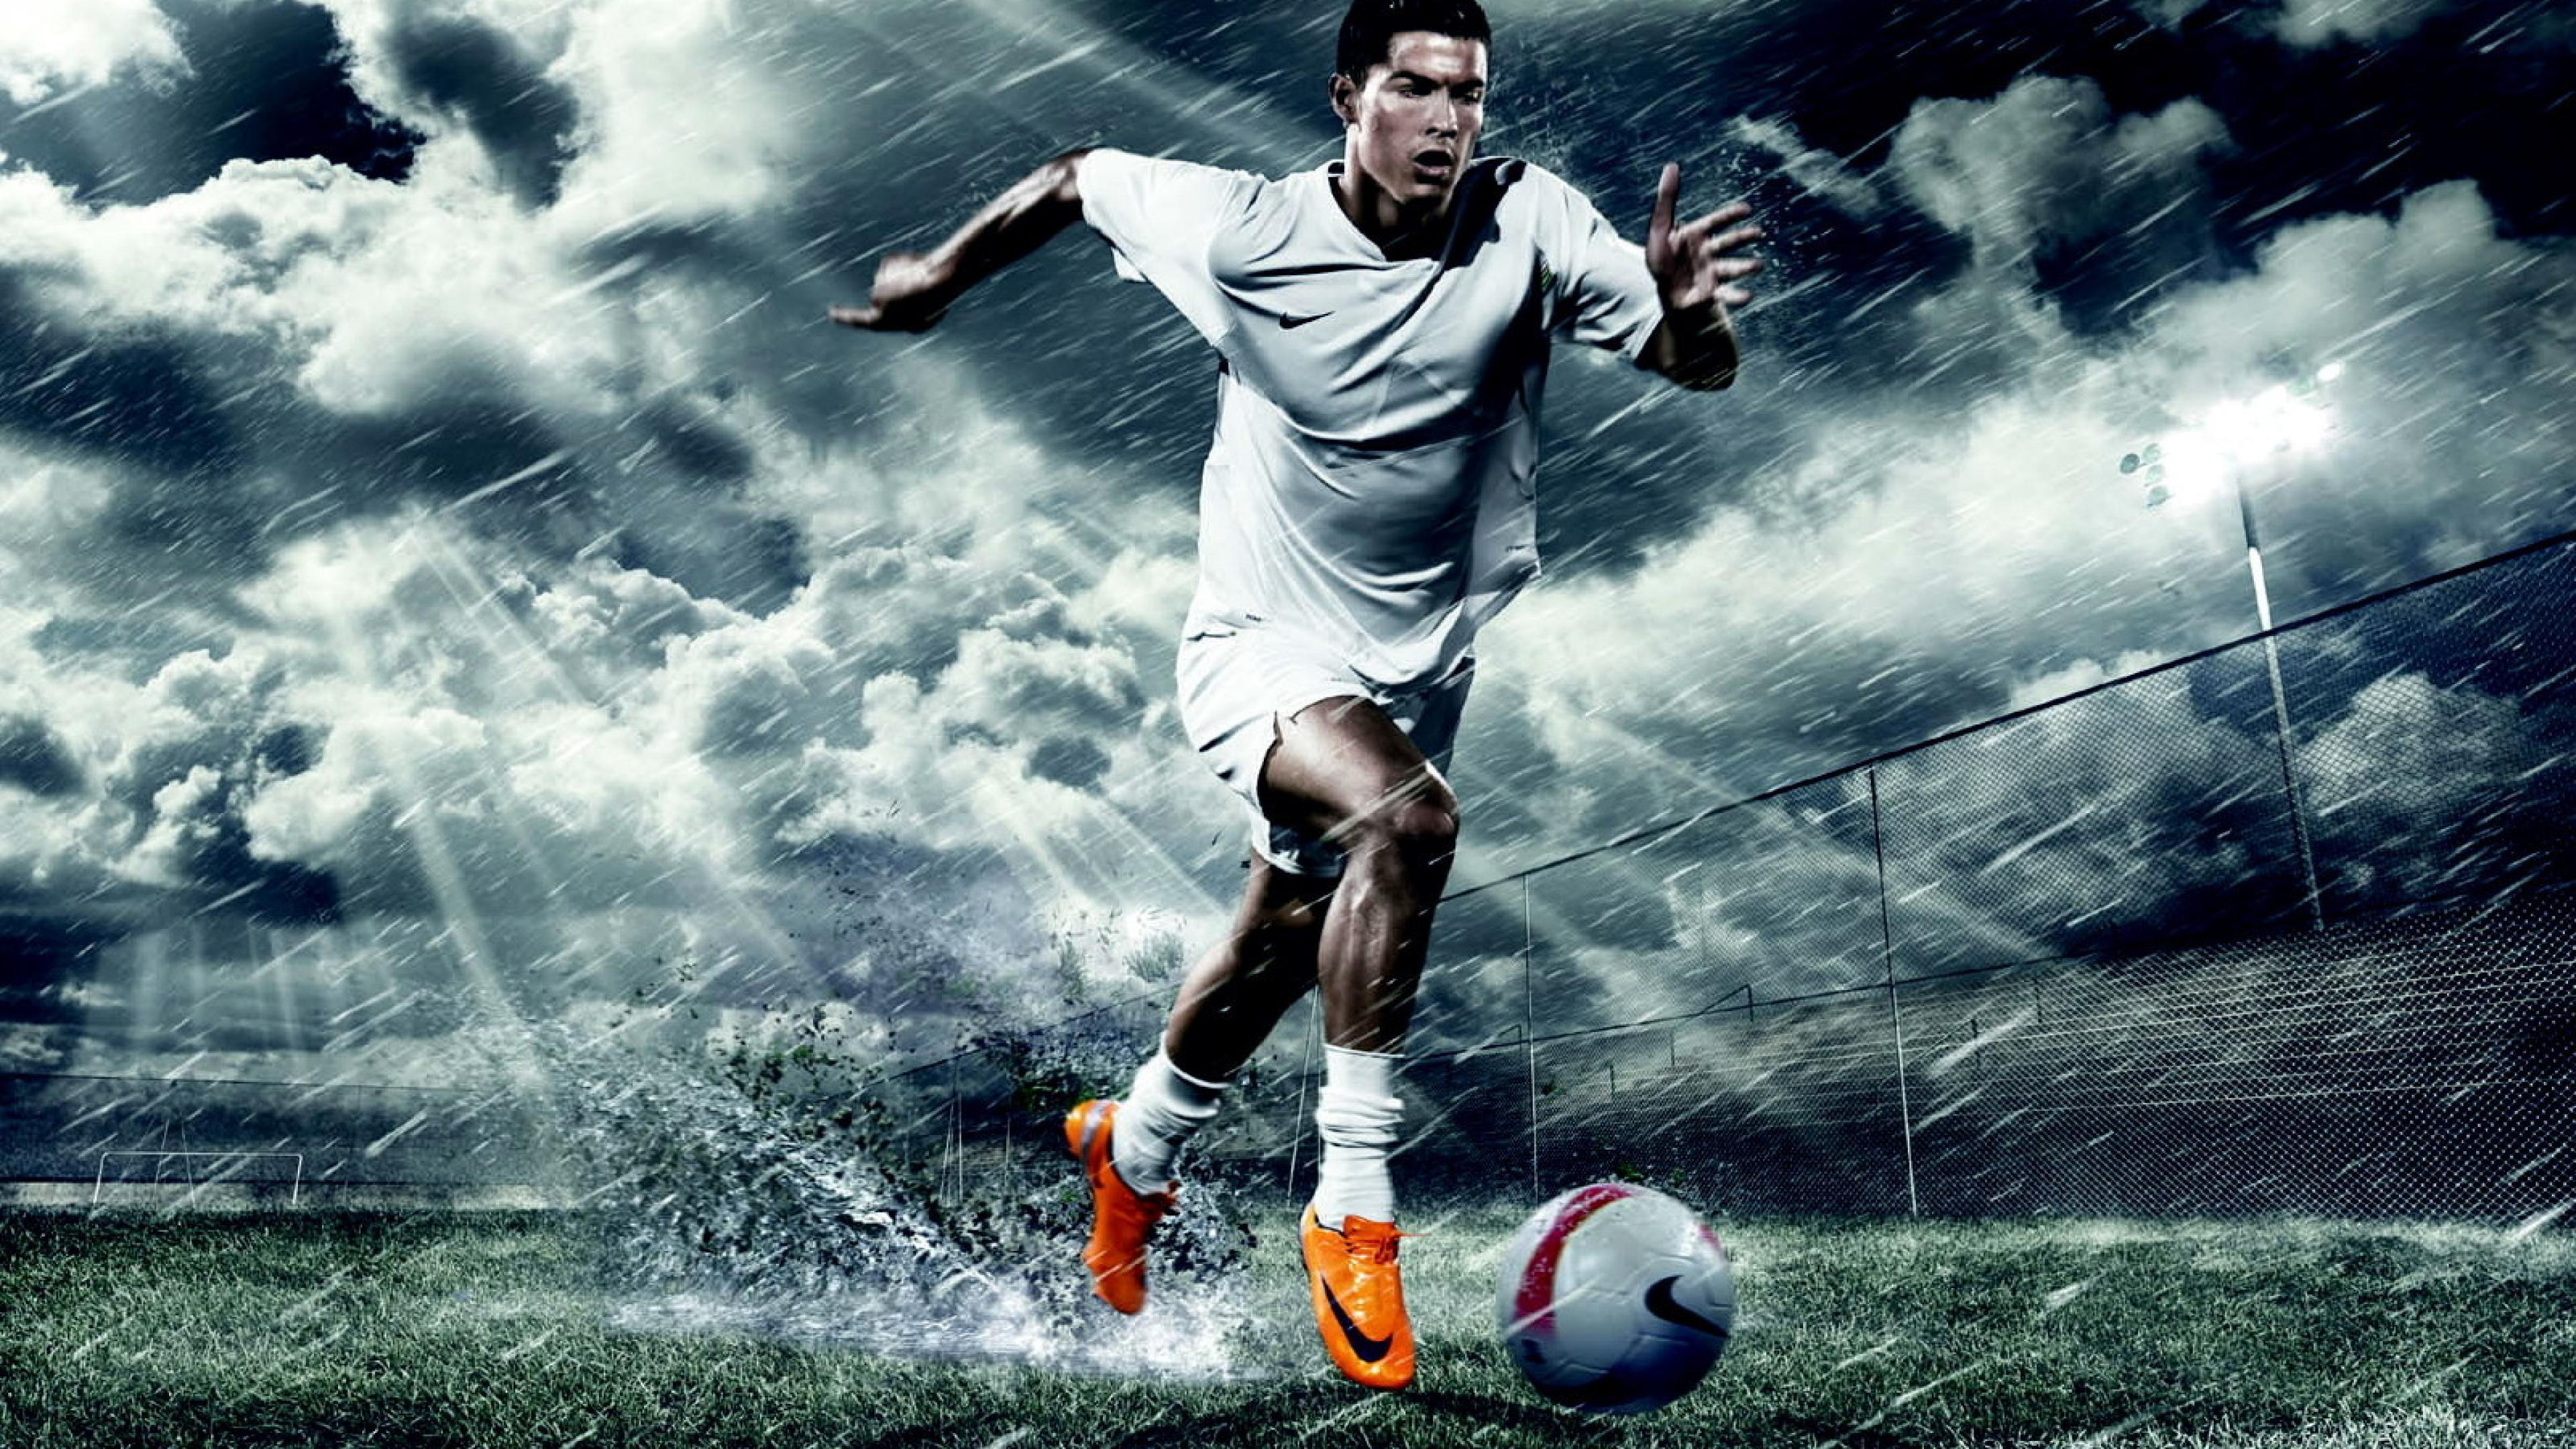 77] Ronaldo Wallpaper on WallpaperSafari 3840x2160